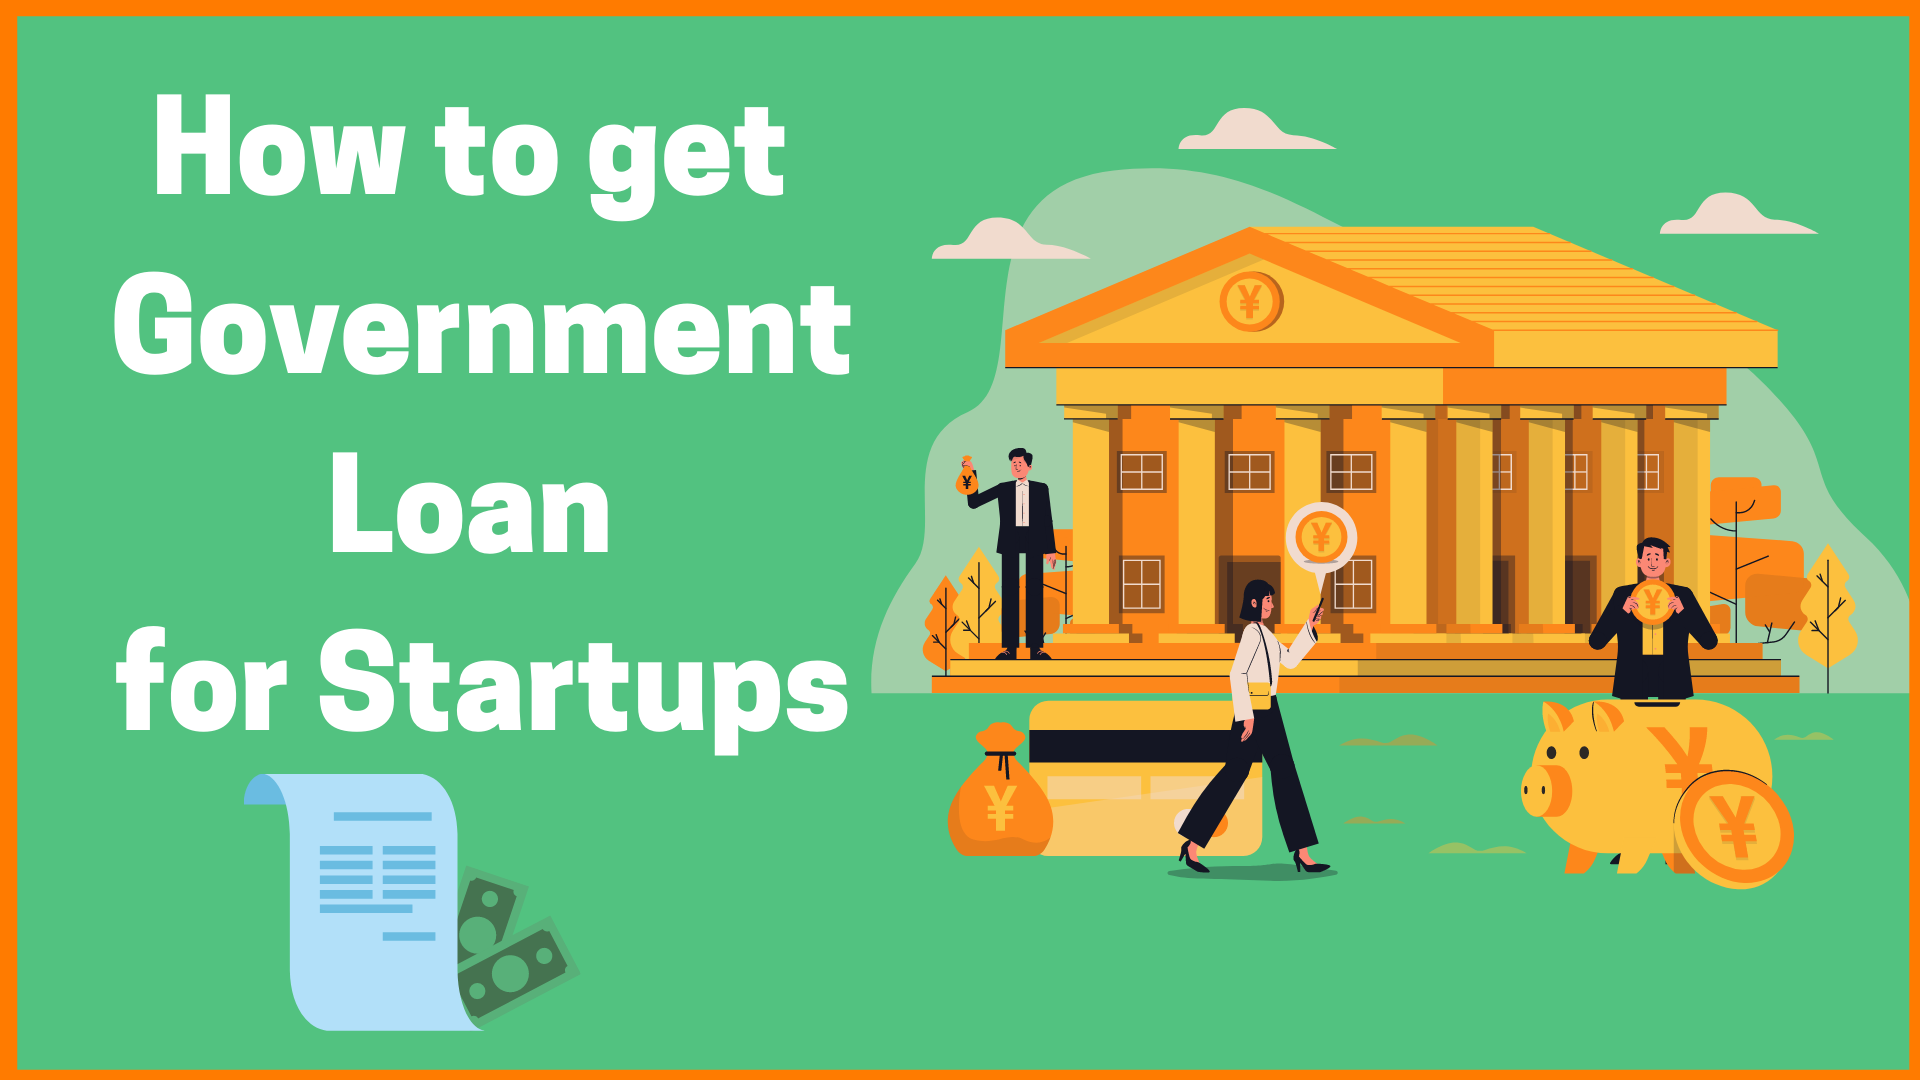 How to get Government Loan for Startups